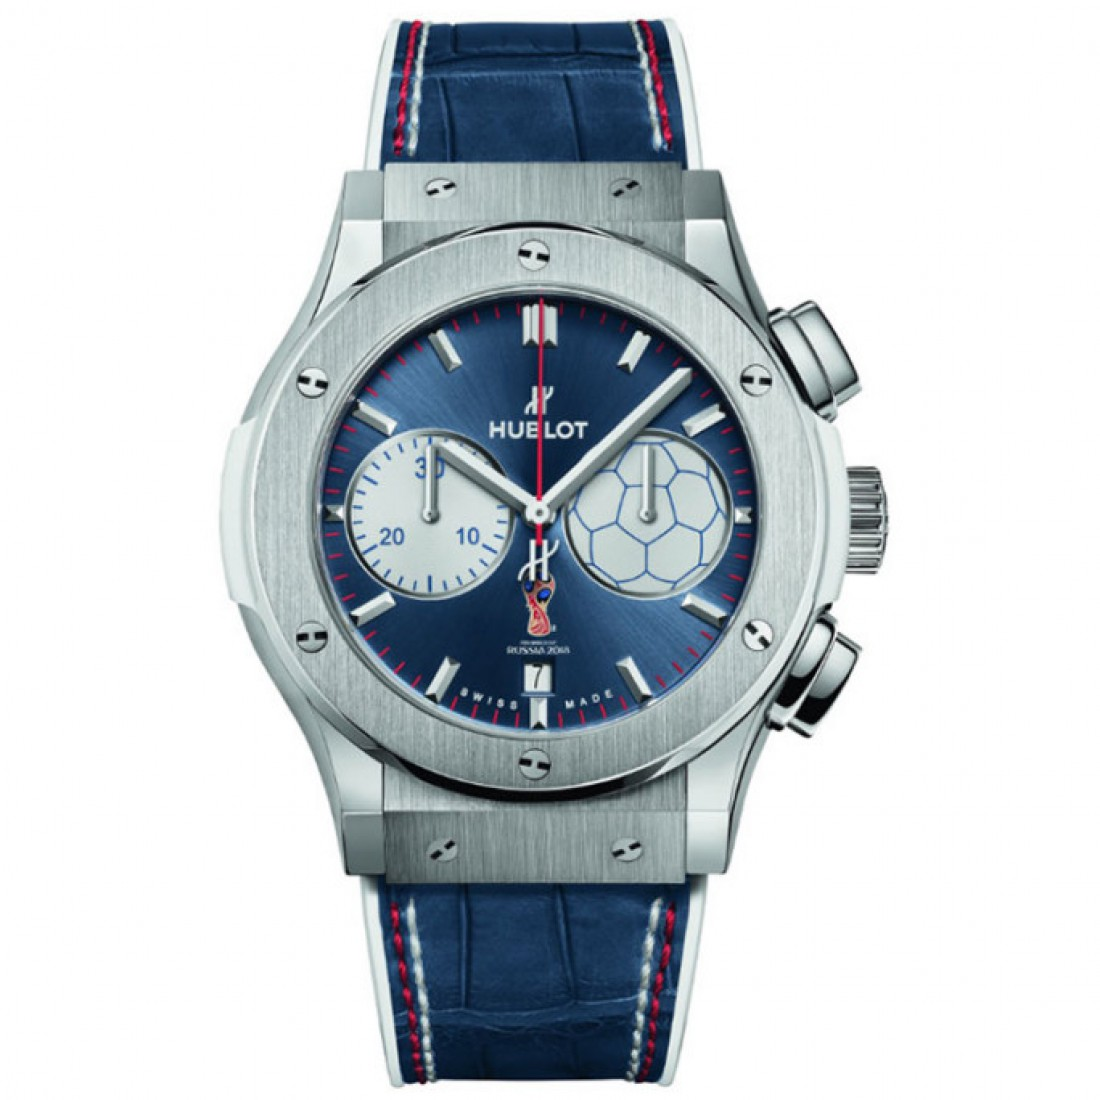 Hublot Classic Fusion Chronograph 2018 FIFA World Cup